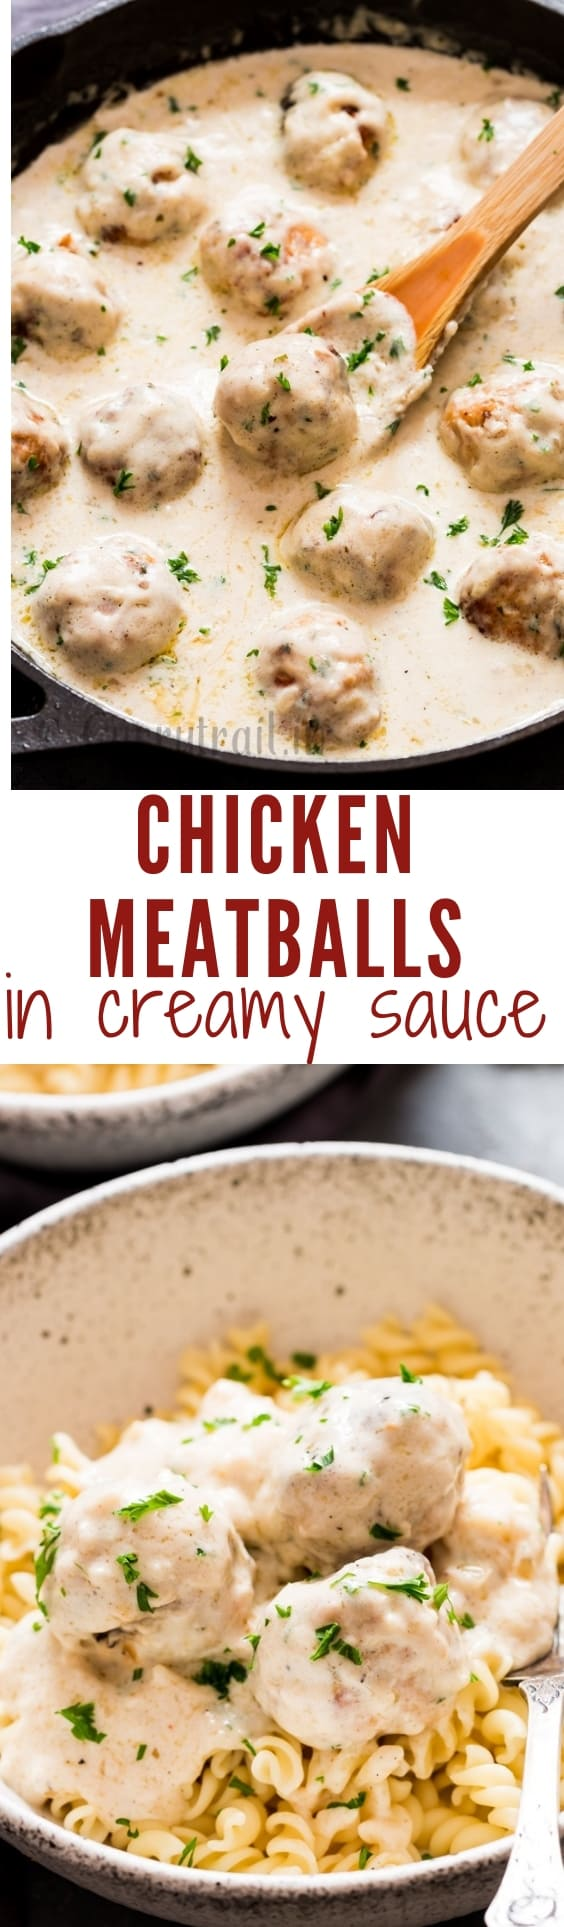 chicken meatballs in cream sauce is decadent chicken meatballs smothered with rich and delicious cream sauce with text over lay